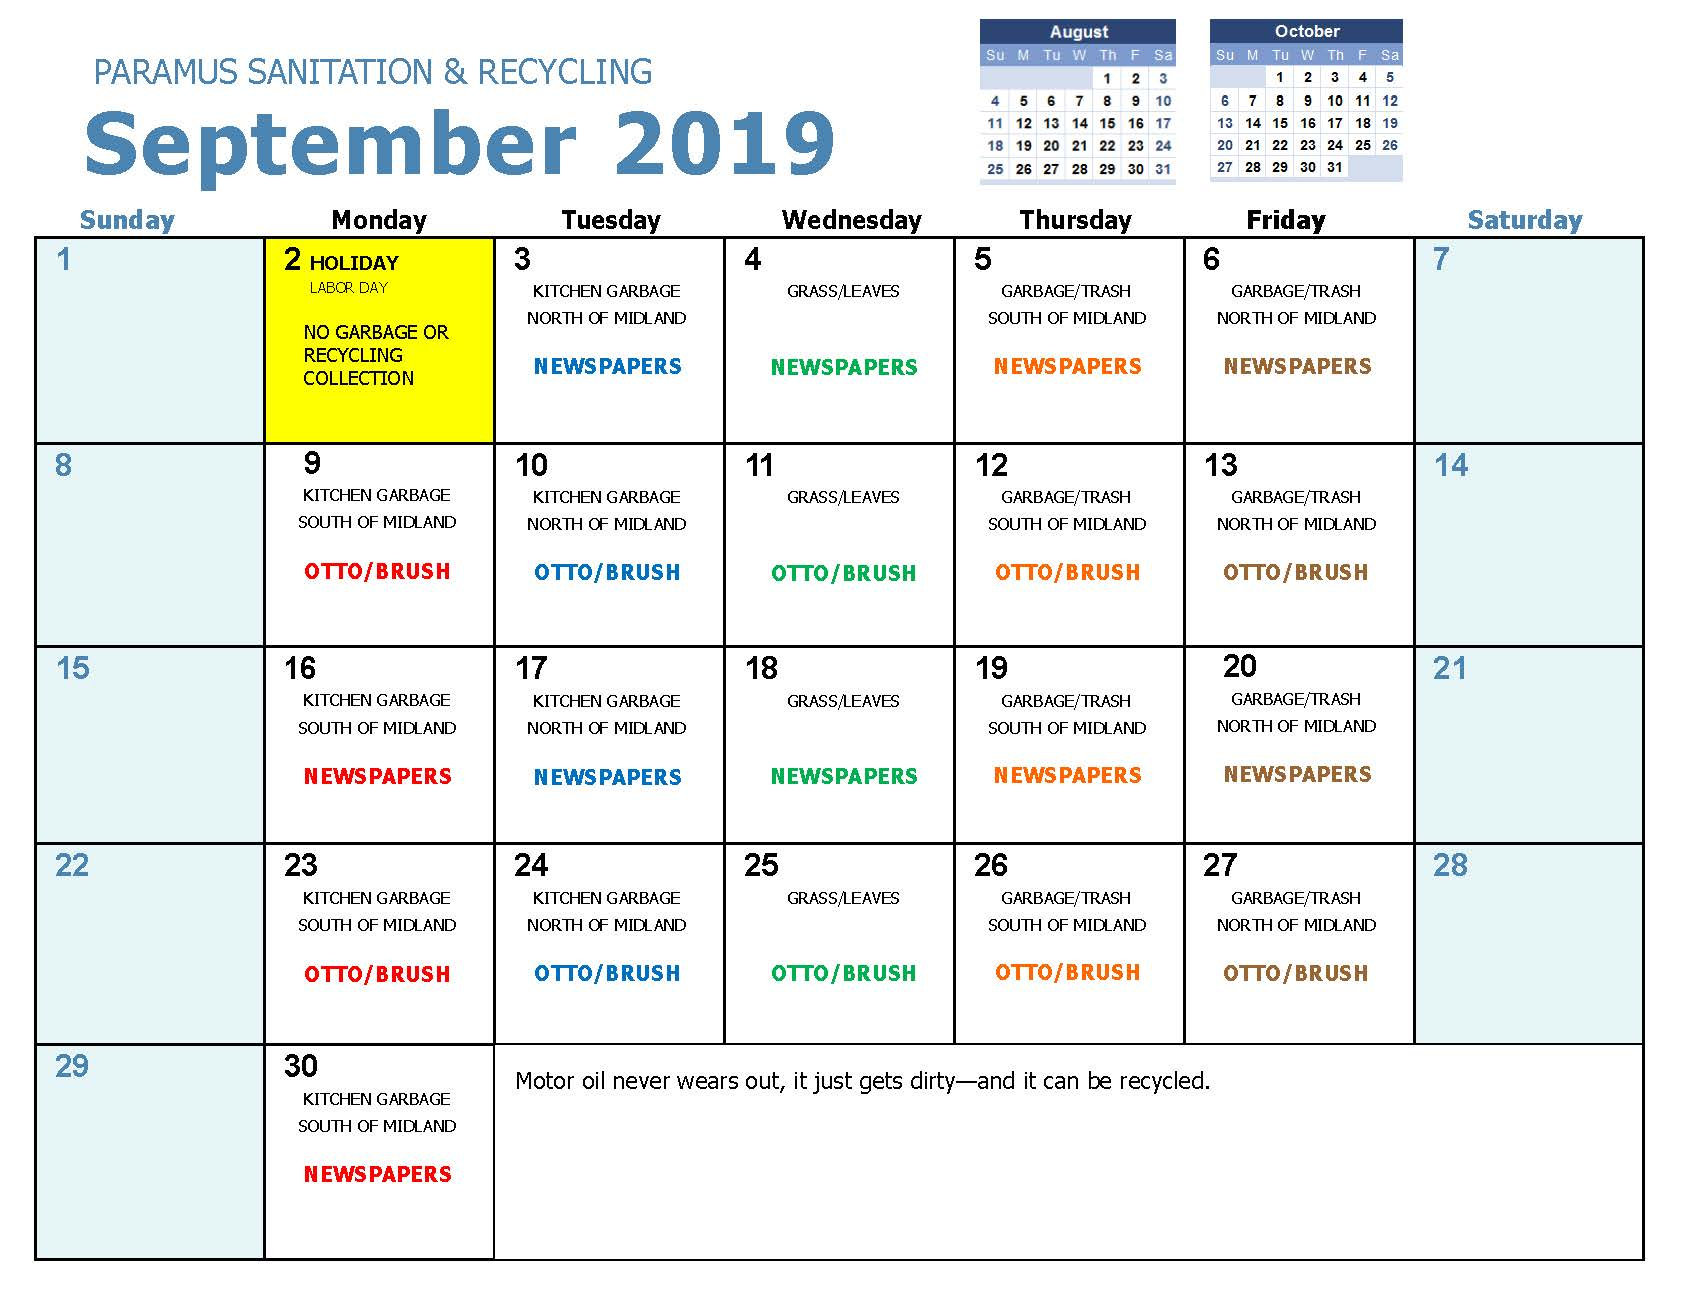 2019 September Household Hazadous Waste Collection